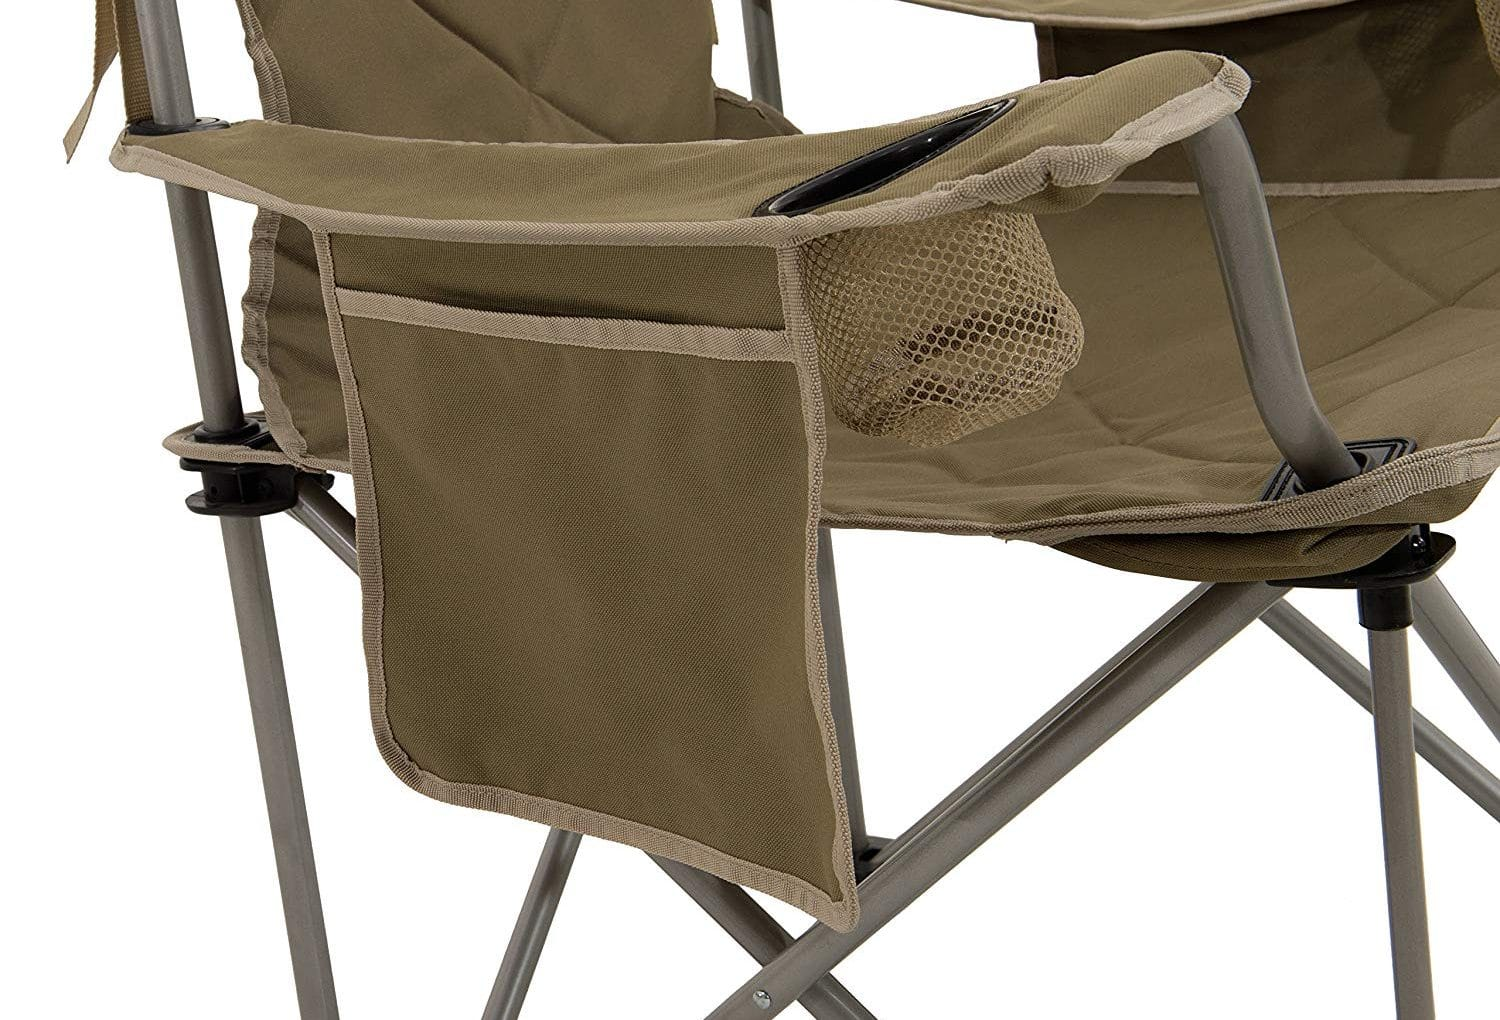 Camping Chairs Round-up